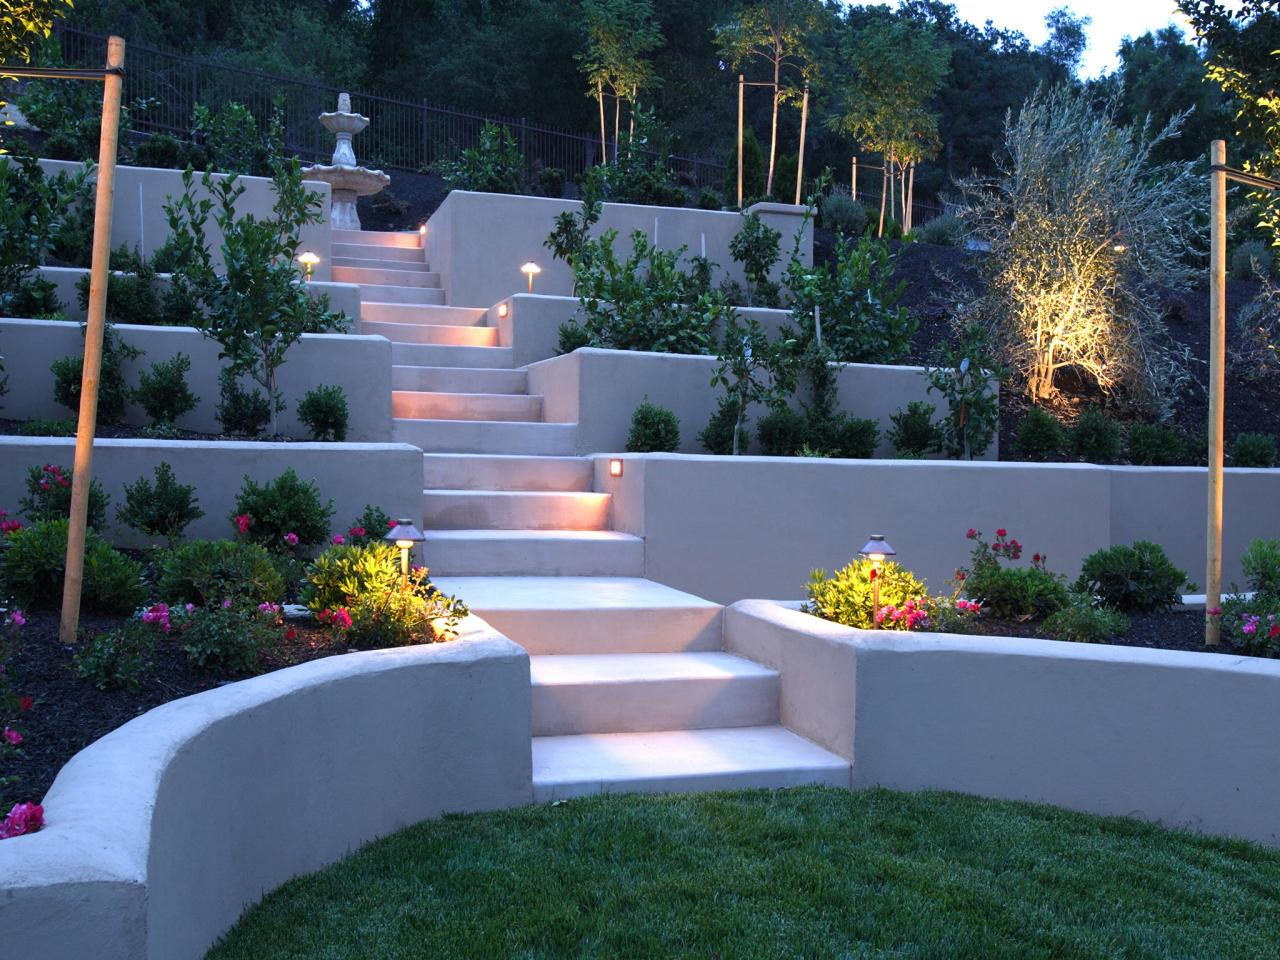 Hardscaping-Frisco TX Professional Landscapers & Outdoor Living Designs-We offer Landscape Design, Outdoor Patios & Pergolas, Outdoor Living Spaces, Stonescapes, Residential & Commercial Landscaping, Irrigation Installation & Repairs, Drainage Systems, Landscape Lighting, Outdoor Living Spaces, Tree Service, Lawn Service, and more.